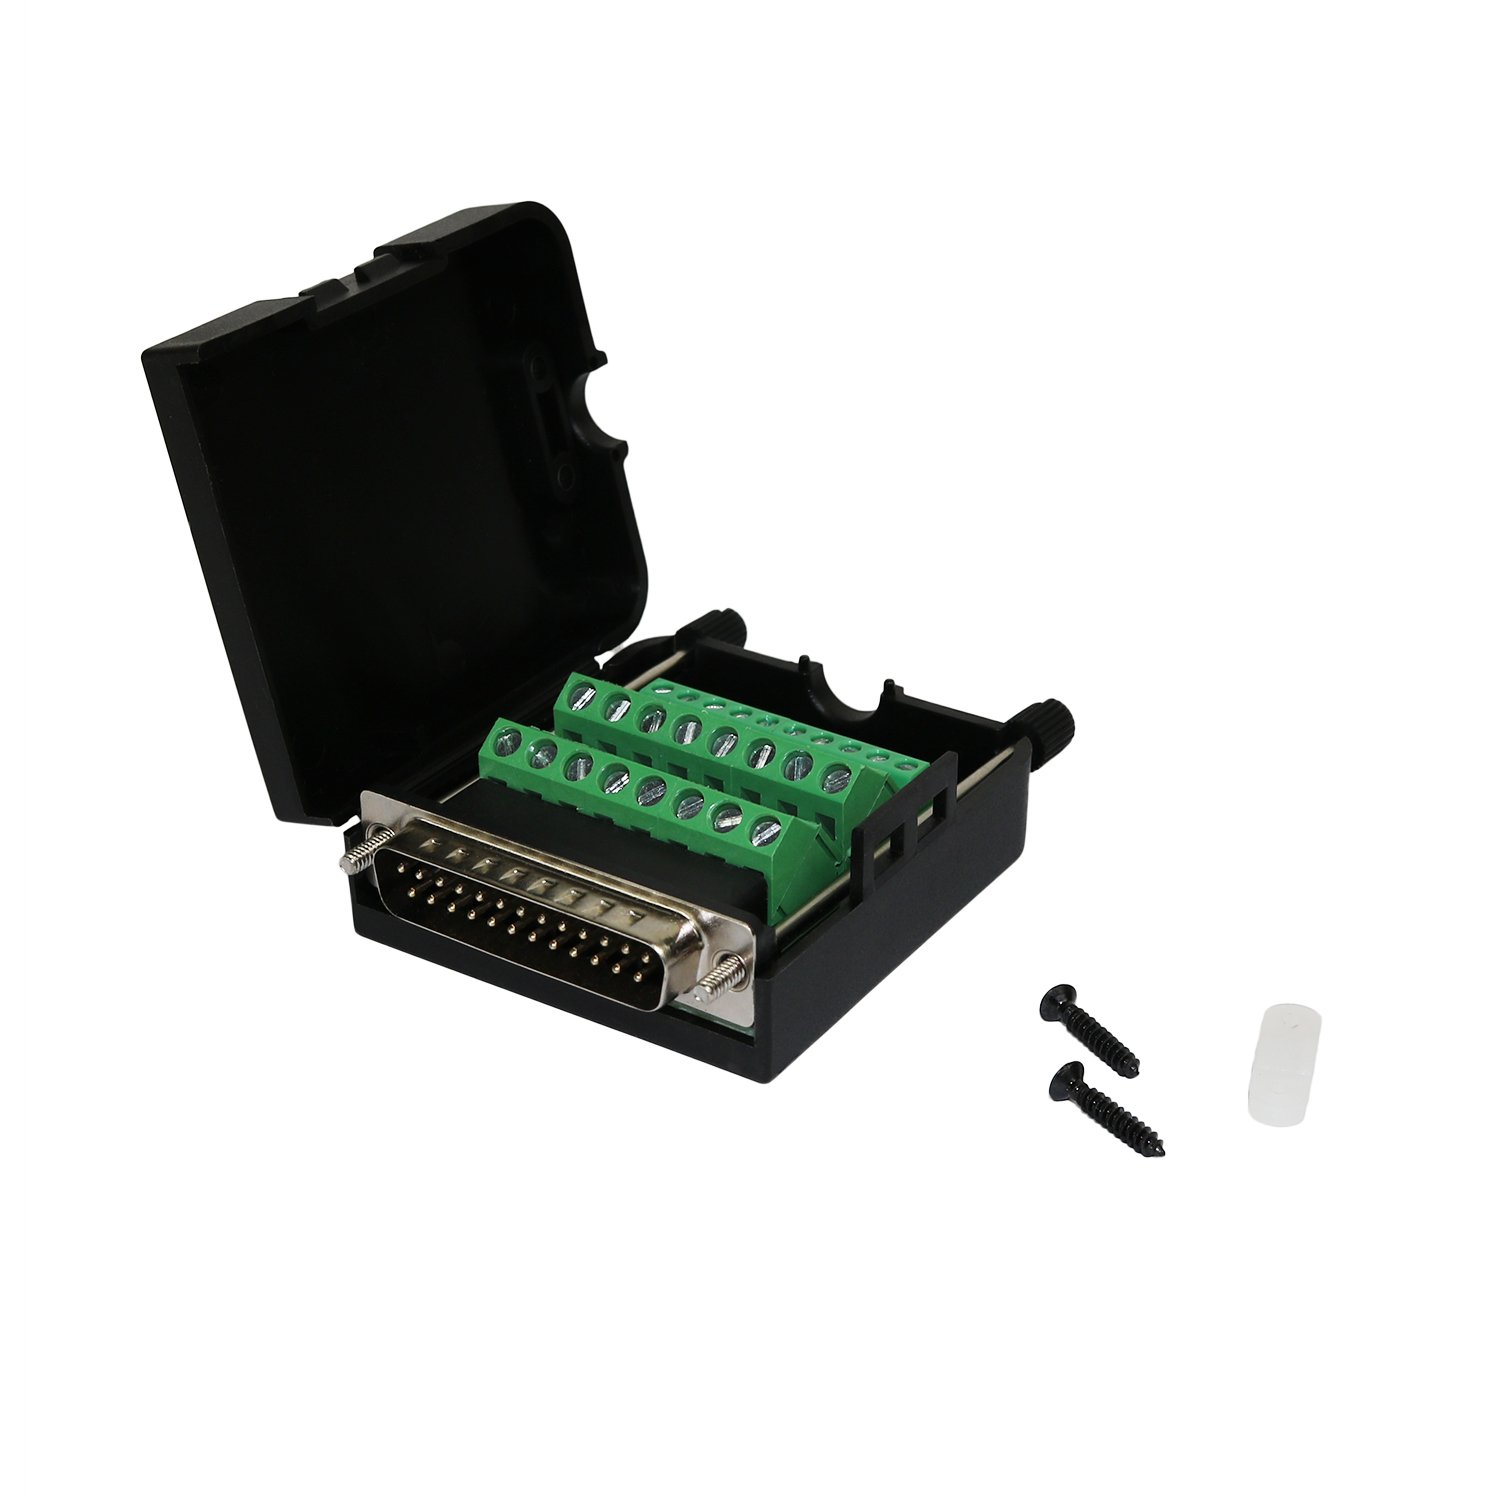 Twinkle Bay DB25 Connector to Wiring Terminal Db25 Breakout Board Solder-free (Male Adapter with Case)